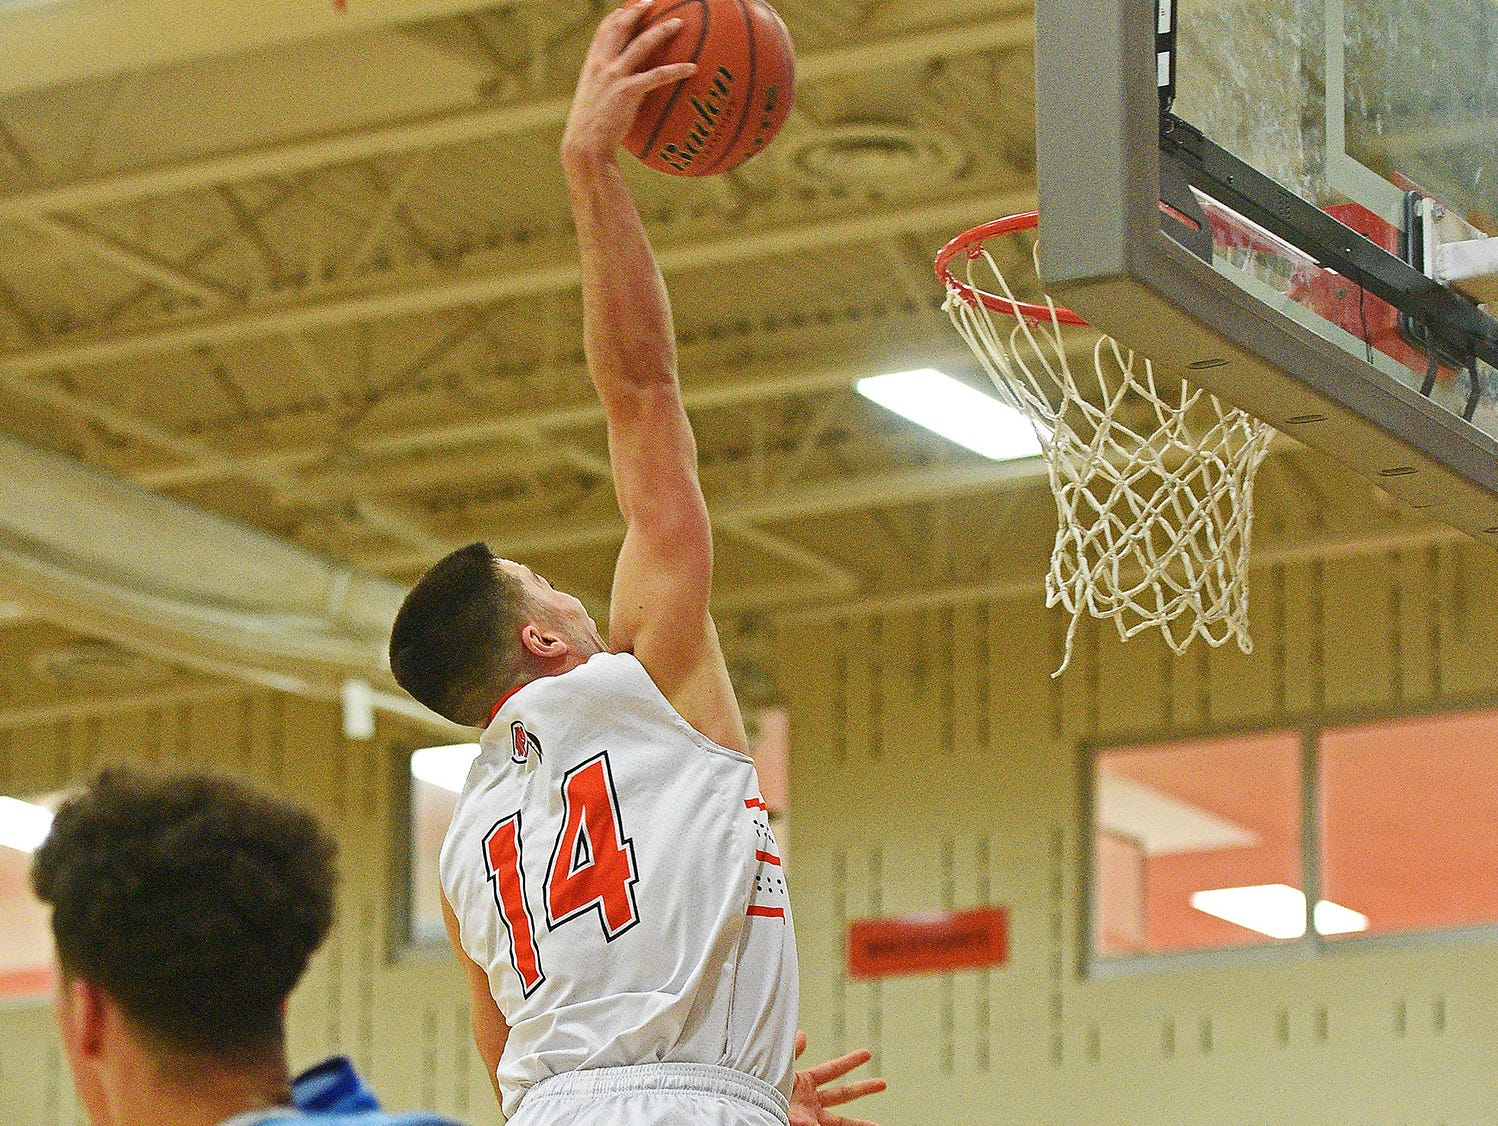 Washington's Jack Talley (14) dunks the ball during a game against Rapid City Stevens Friday, Feb. 10, 2017, at Washington High School in Sioux Falls.